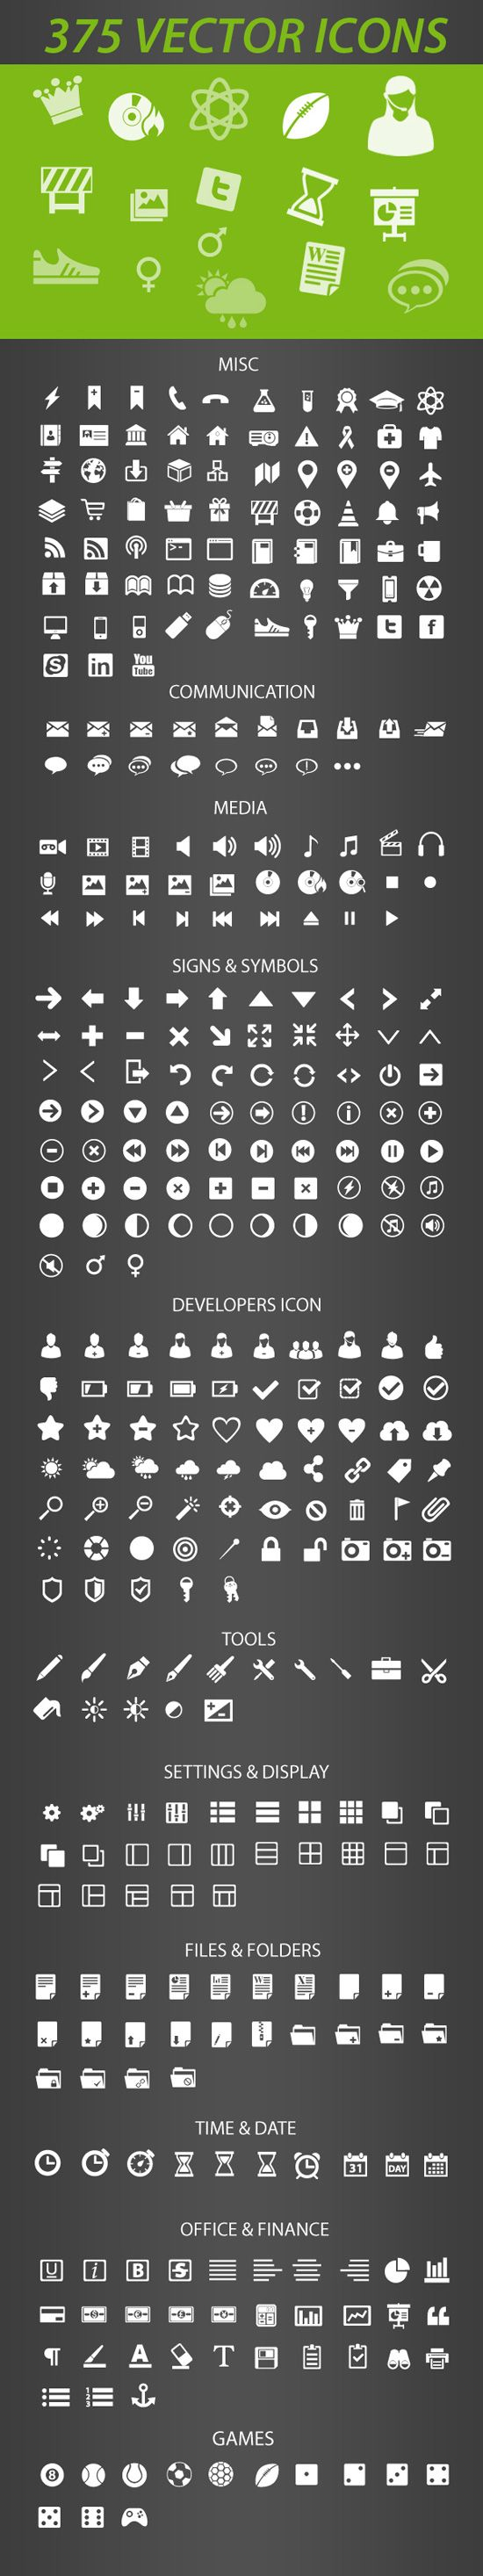 Free Icon Pack: 375 Retina-Display-Ready Icons via SixRevisions.com